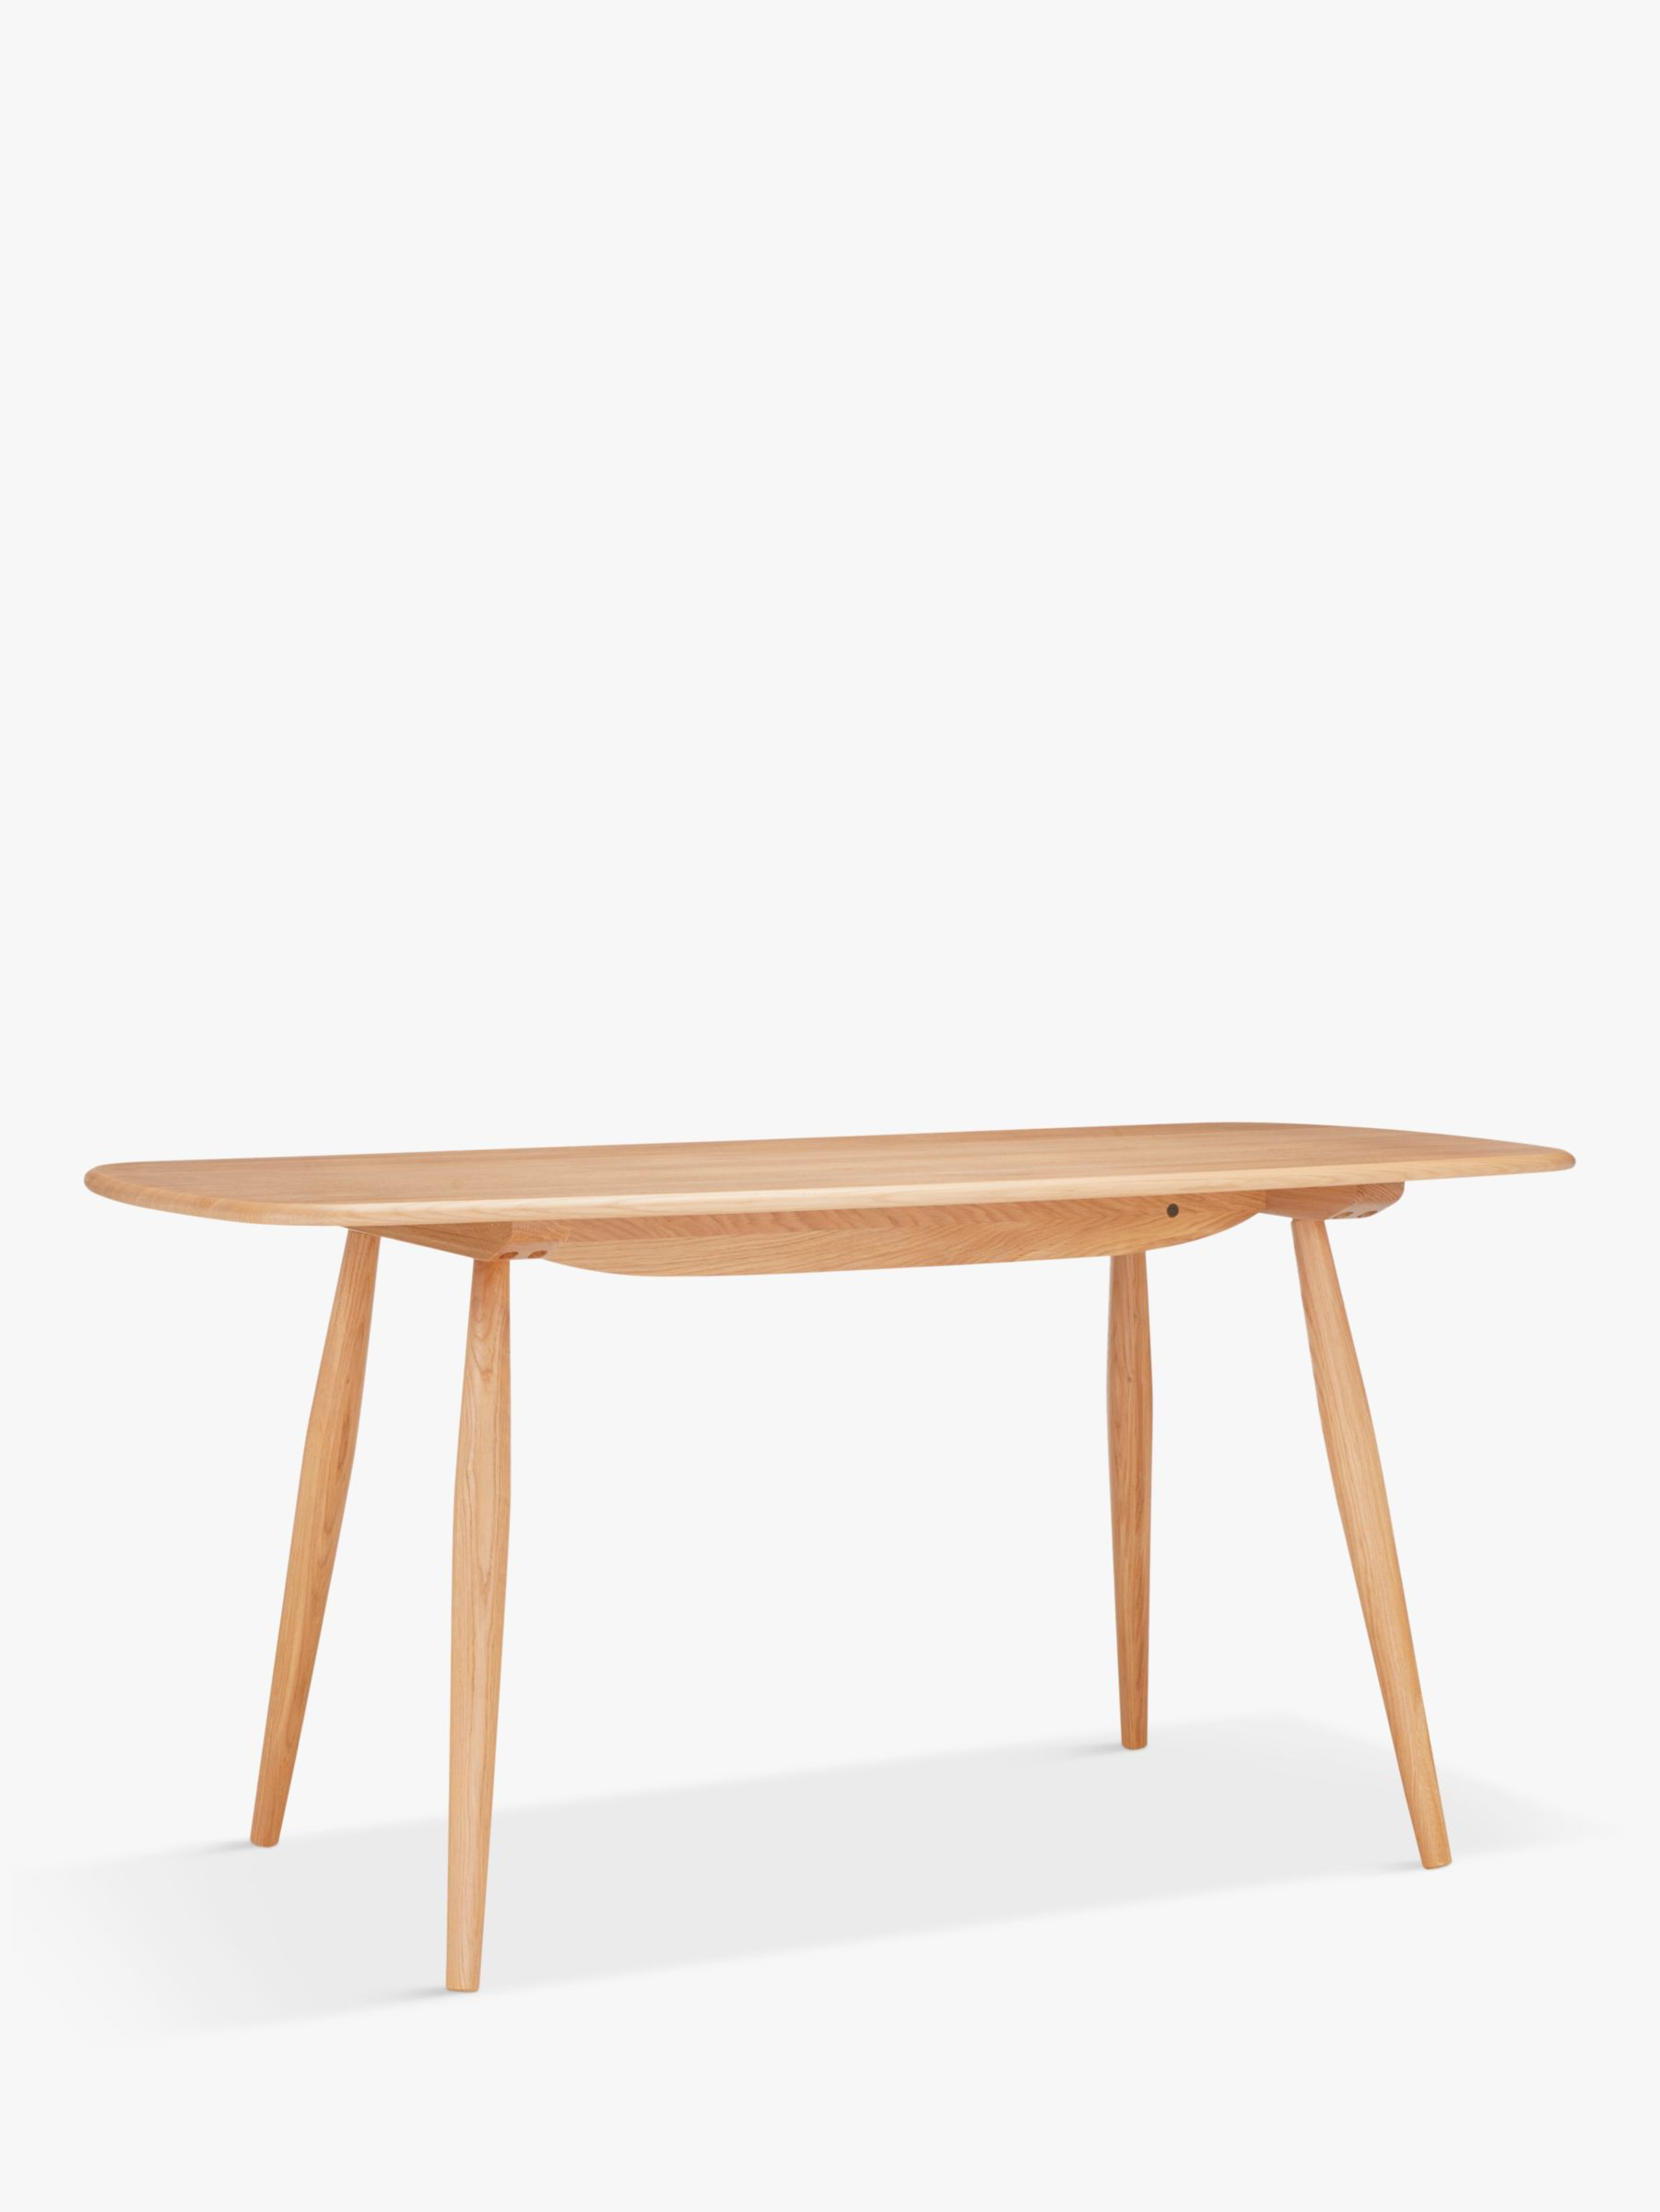 ercol for John Lewis Shalstone Dining Table Octer 16359900 : 236536309zoom from www.octer.co.uk size 2400 x 2400 jpeg 108kB